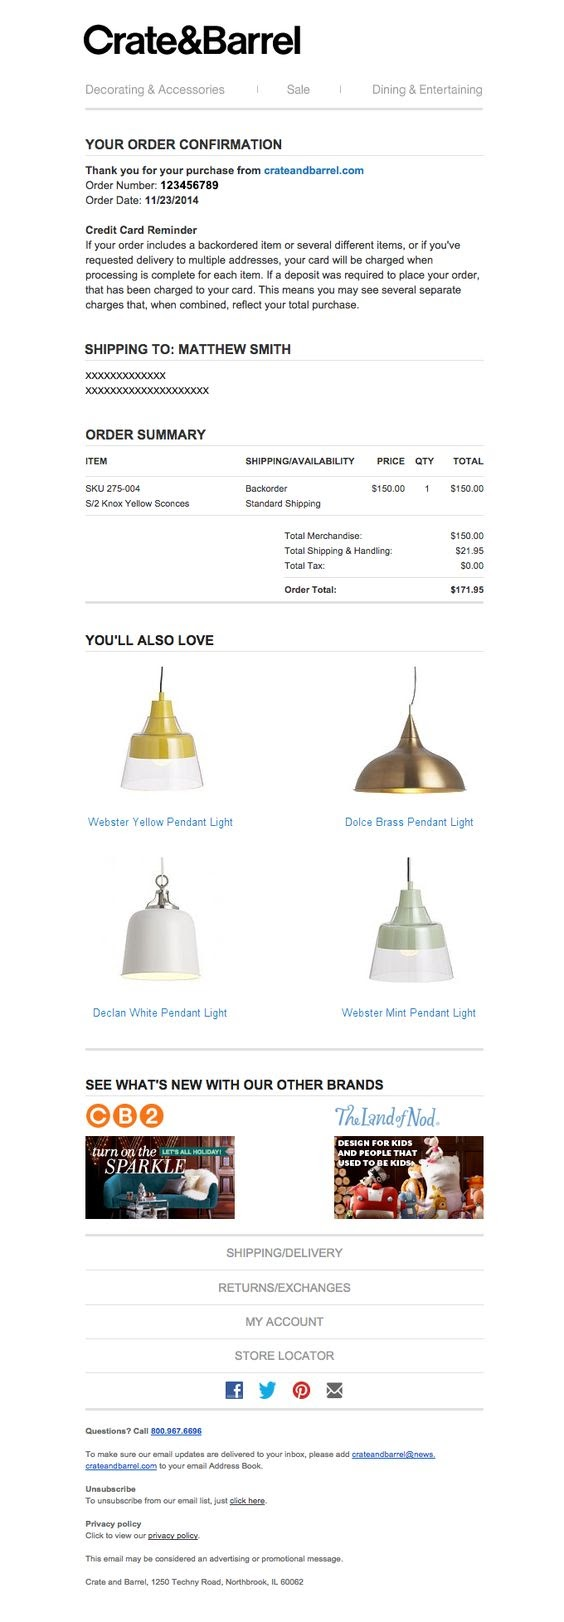 order confirmation email example from Crate & Barrel